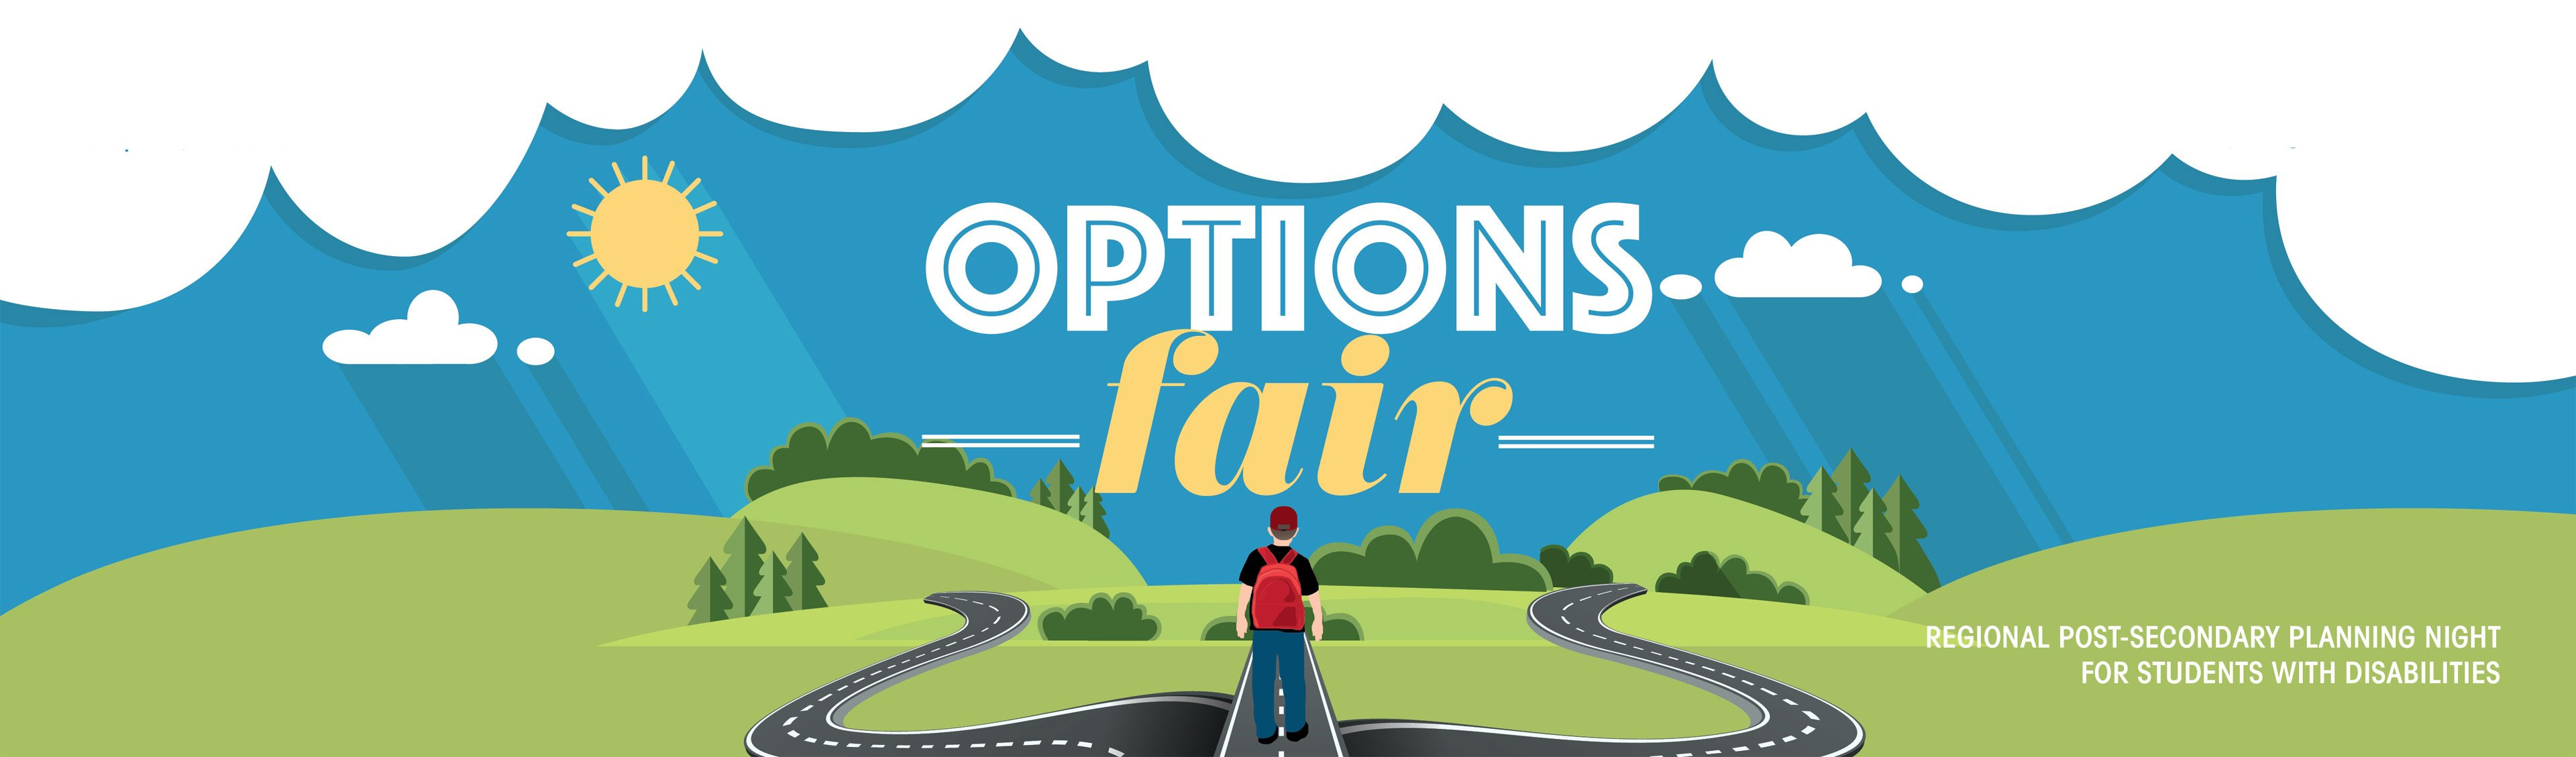 Options Fair